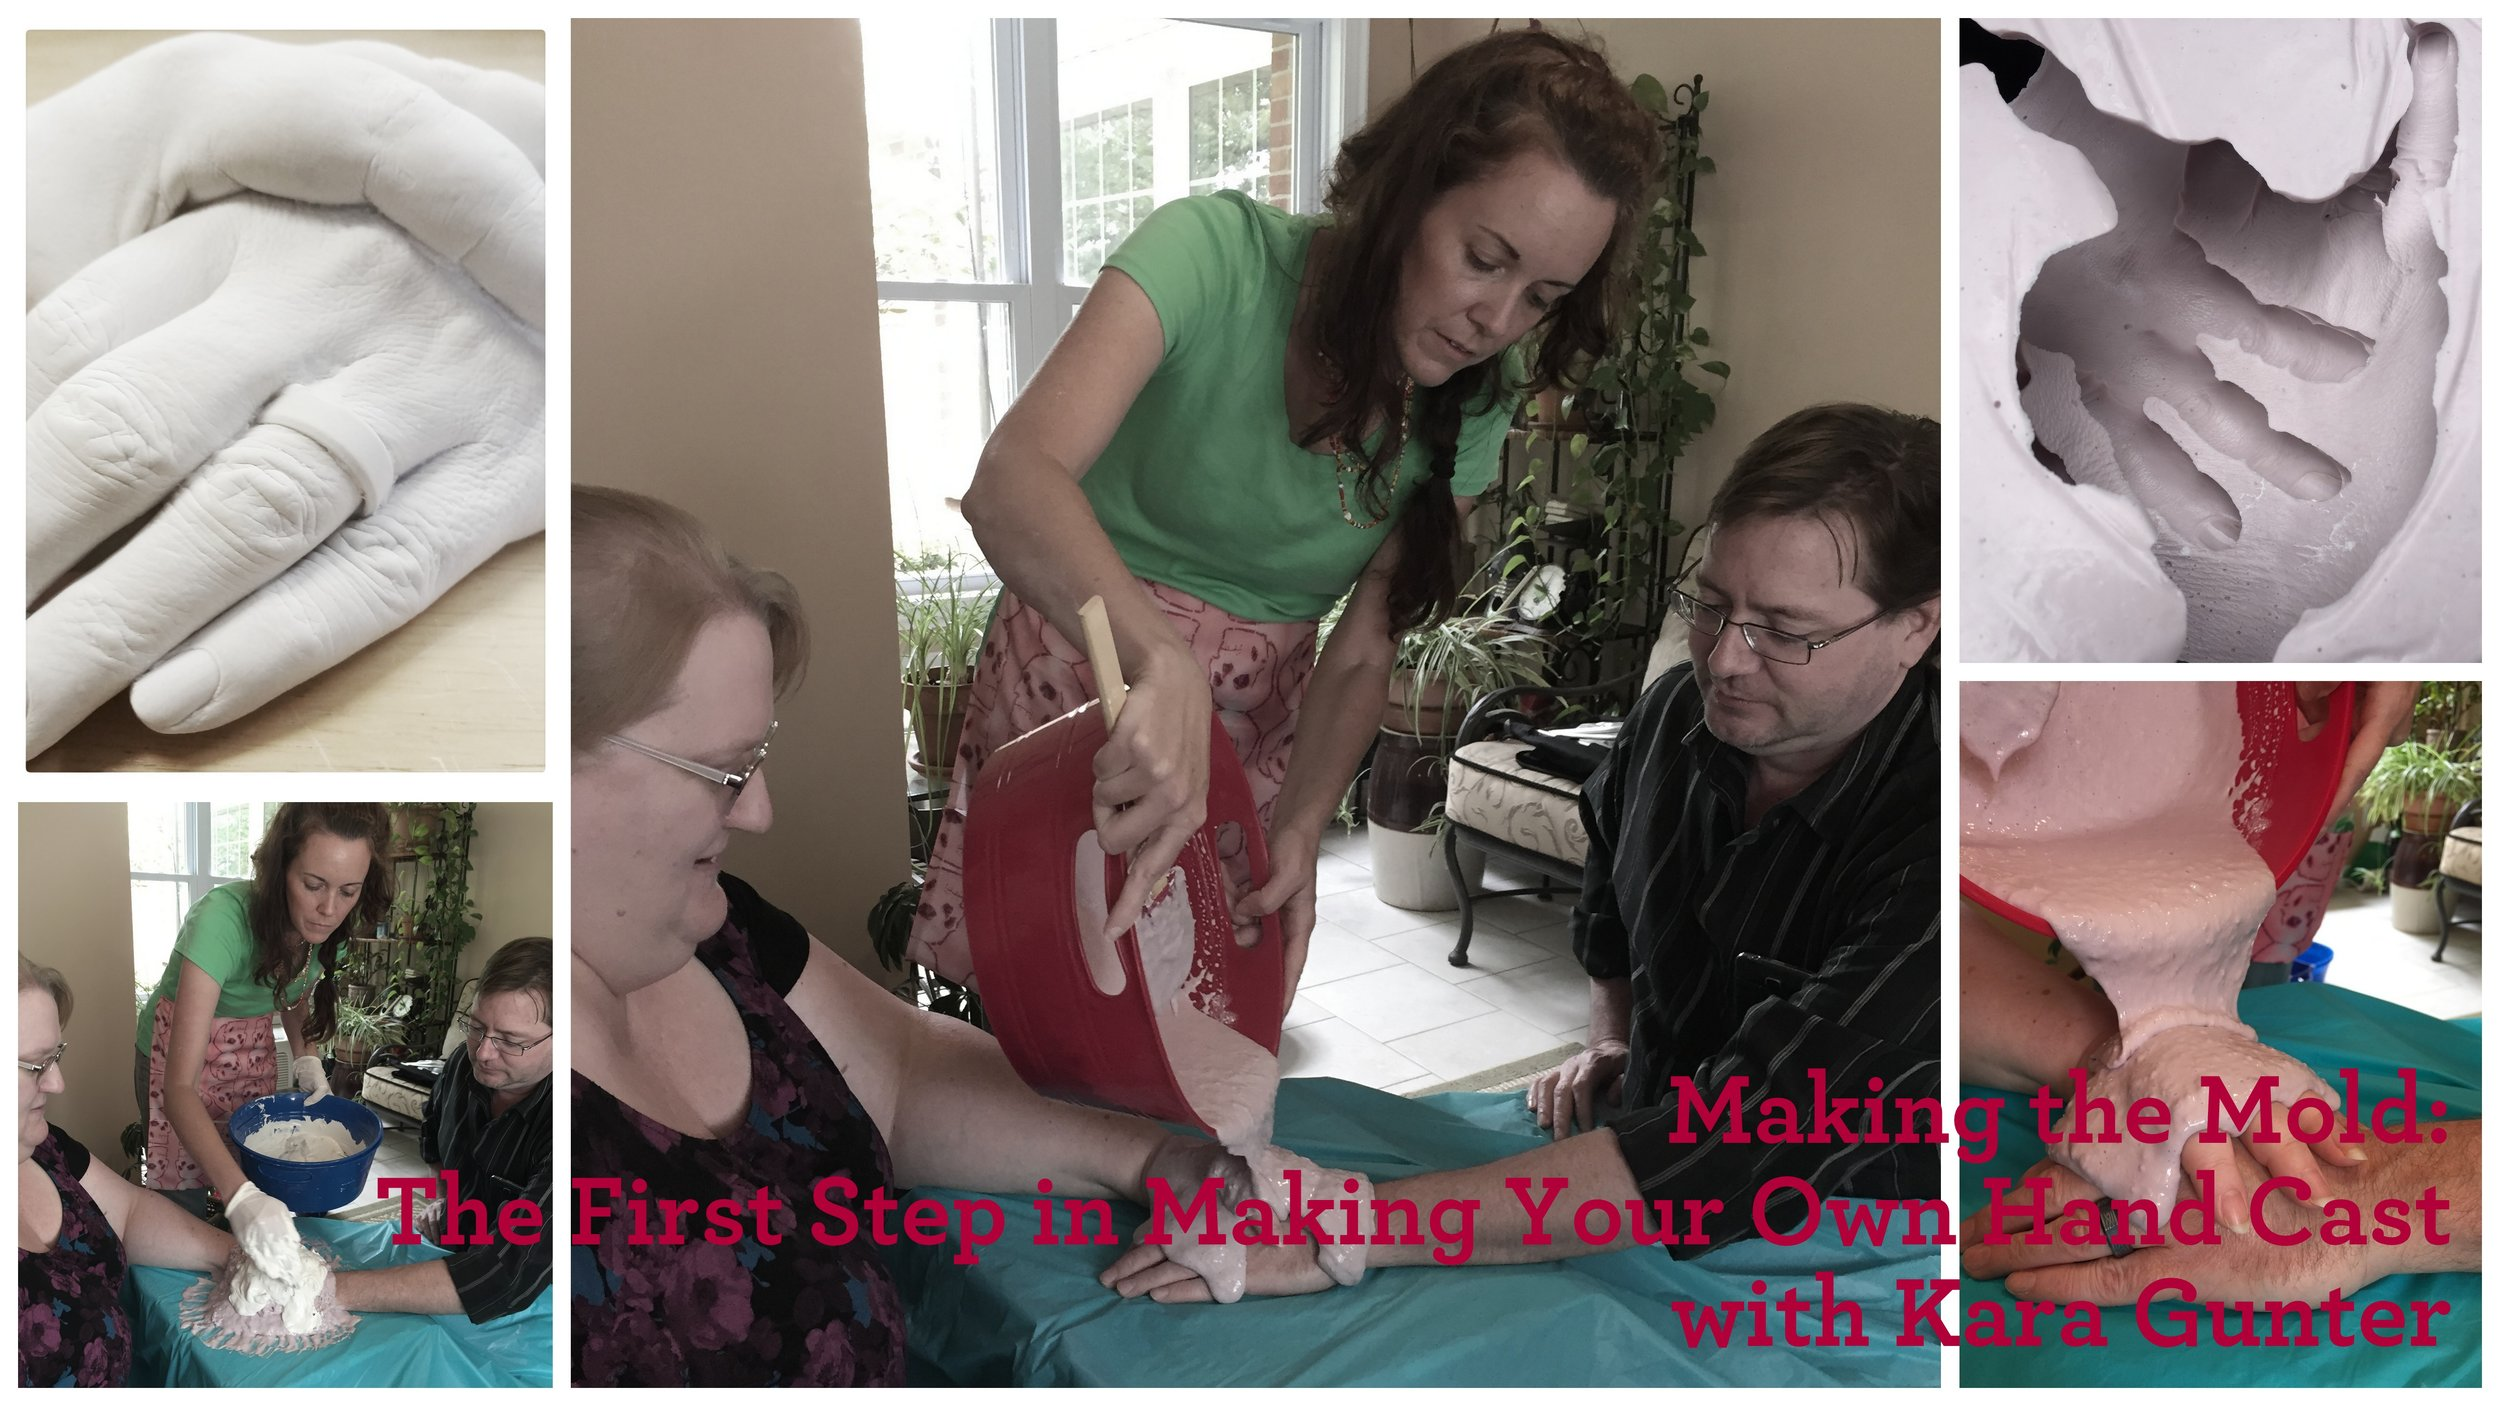 Class One - Making the Mold: The First Step in Making Your Own Hand CastSkillshare Link:https://skl.sh/2J5IglCThis class (3 videos) is the first in a series of three classes, which will walk you through the process of making your own hand casting.This series of classes is designed for the absolute beginner, however an adventurous spirit is a must! This thorough series of classes will walk you through making a mold, pouring the mold, and refining the casting. If you are interested in beginning your own hand casting business, you're an artist looking for an accessible introduction to body or life casting, or you want to take your own hand cast for your family or friends to the next level, this is a great place to start.